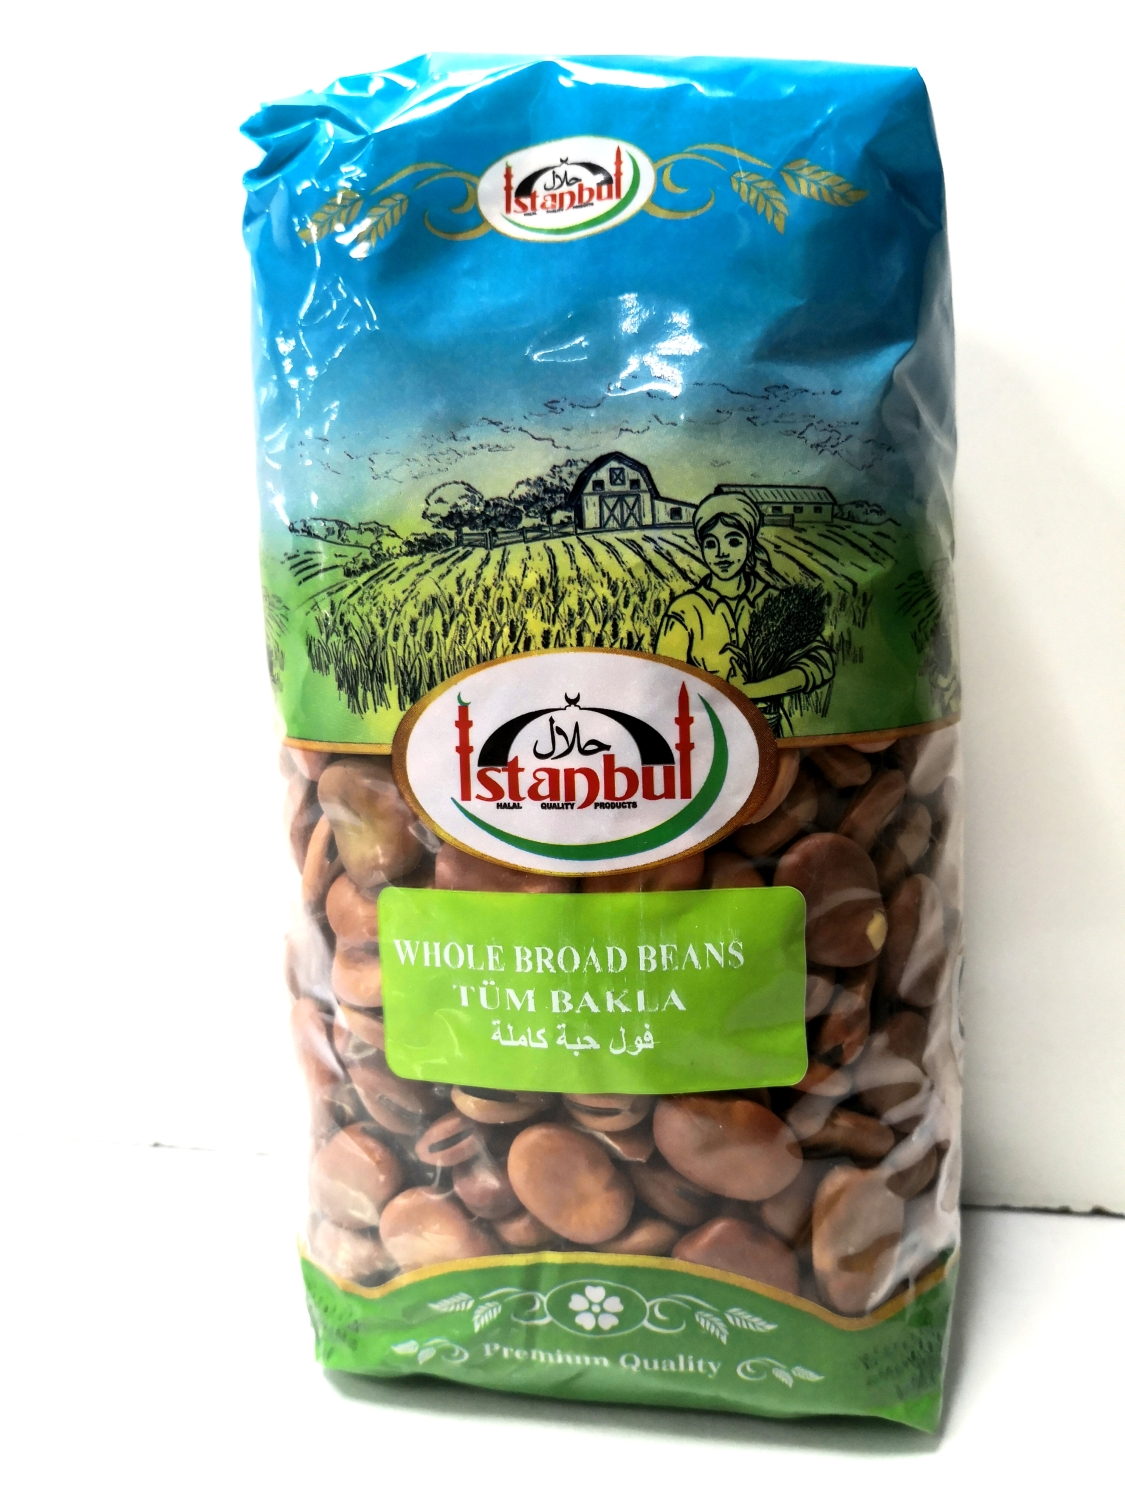 Istanbul Whole Broad Beans 1kg